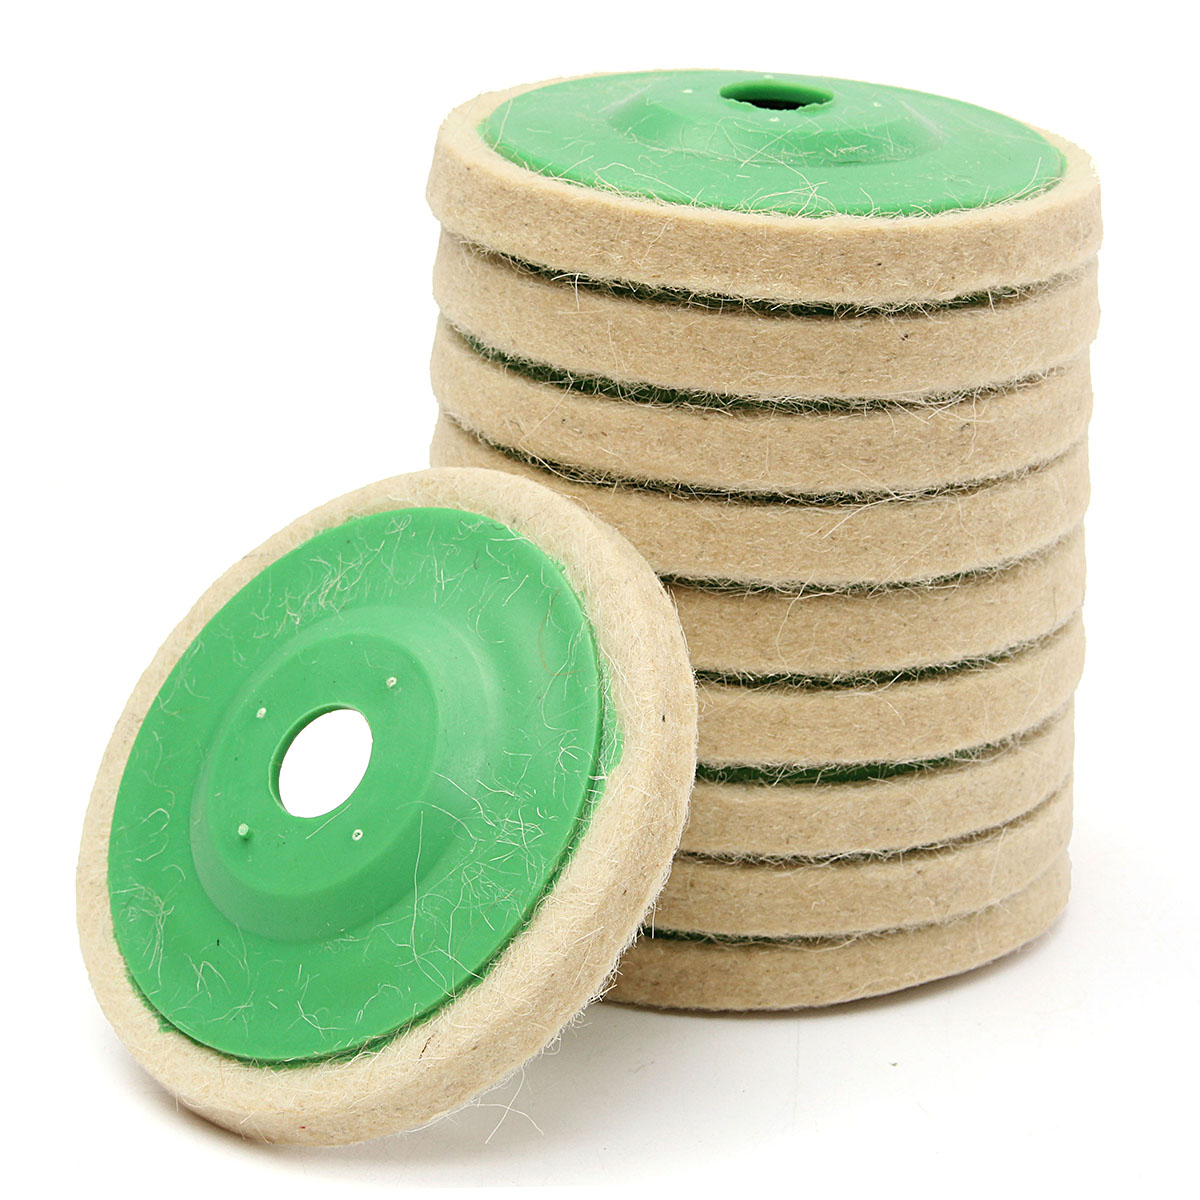 10pcs Wool Polishing Wheel Buffing Pads Angle Grinder Wheel Felt Polishing Disc For Metal Marble Glass Ceramics 4 Inch 100mm